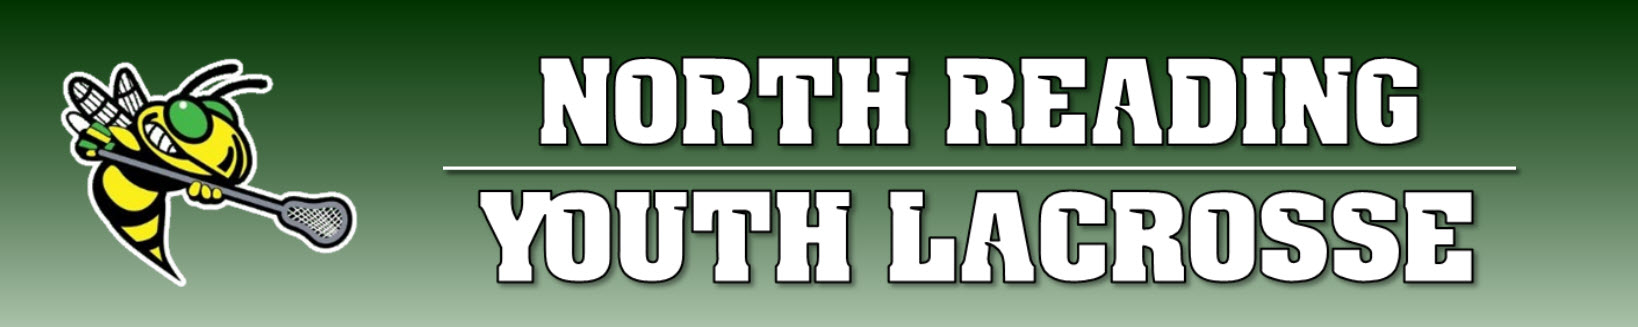 North Reading Youth Lacrosse League, Lacrosse, Goal, Field